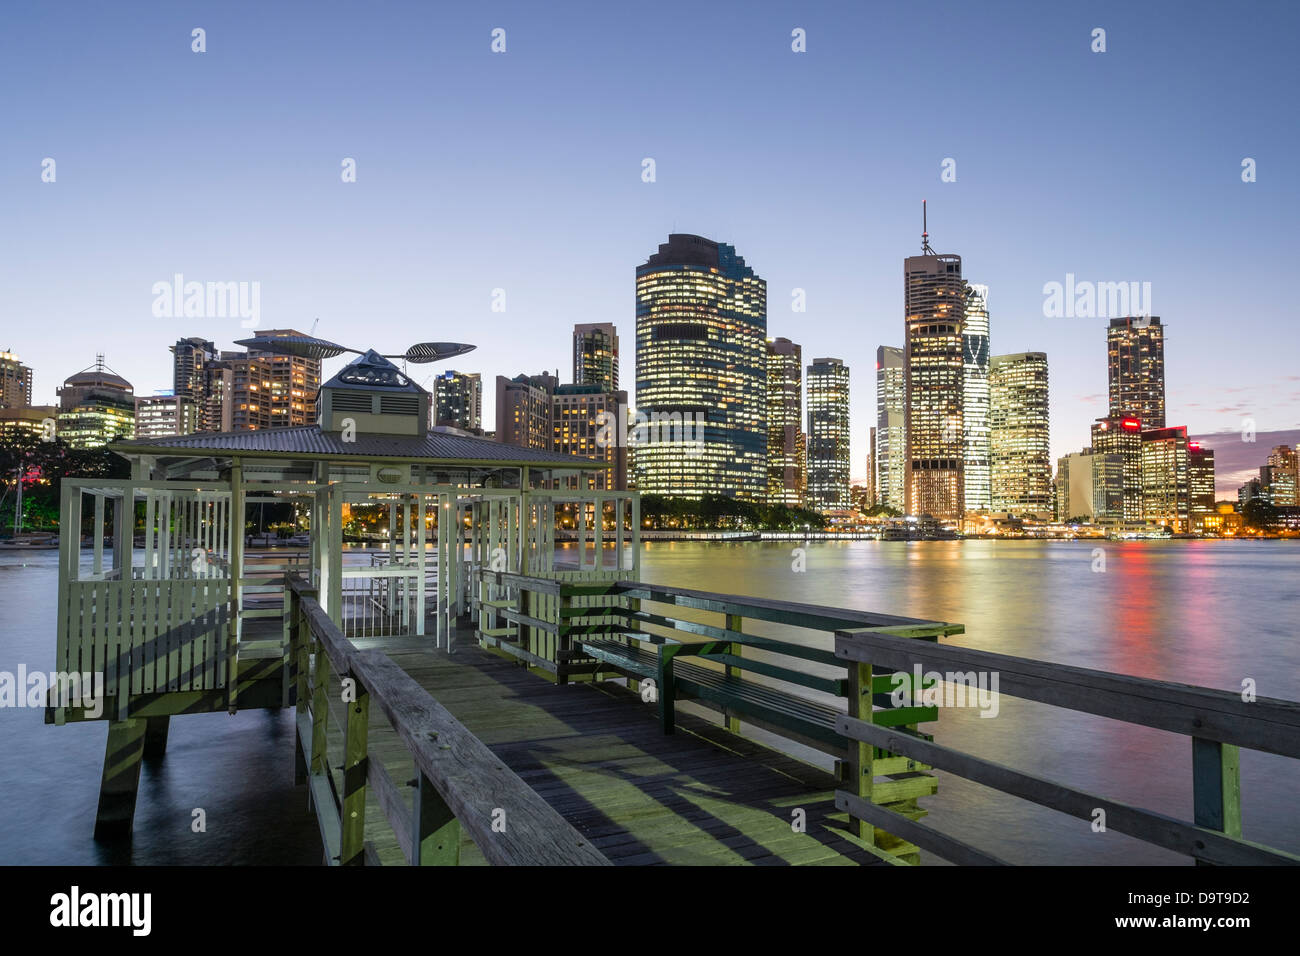 Evening skyline of Central Business District of Brisbane in Queensland Australia - Stock Image